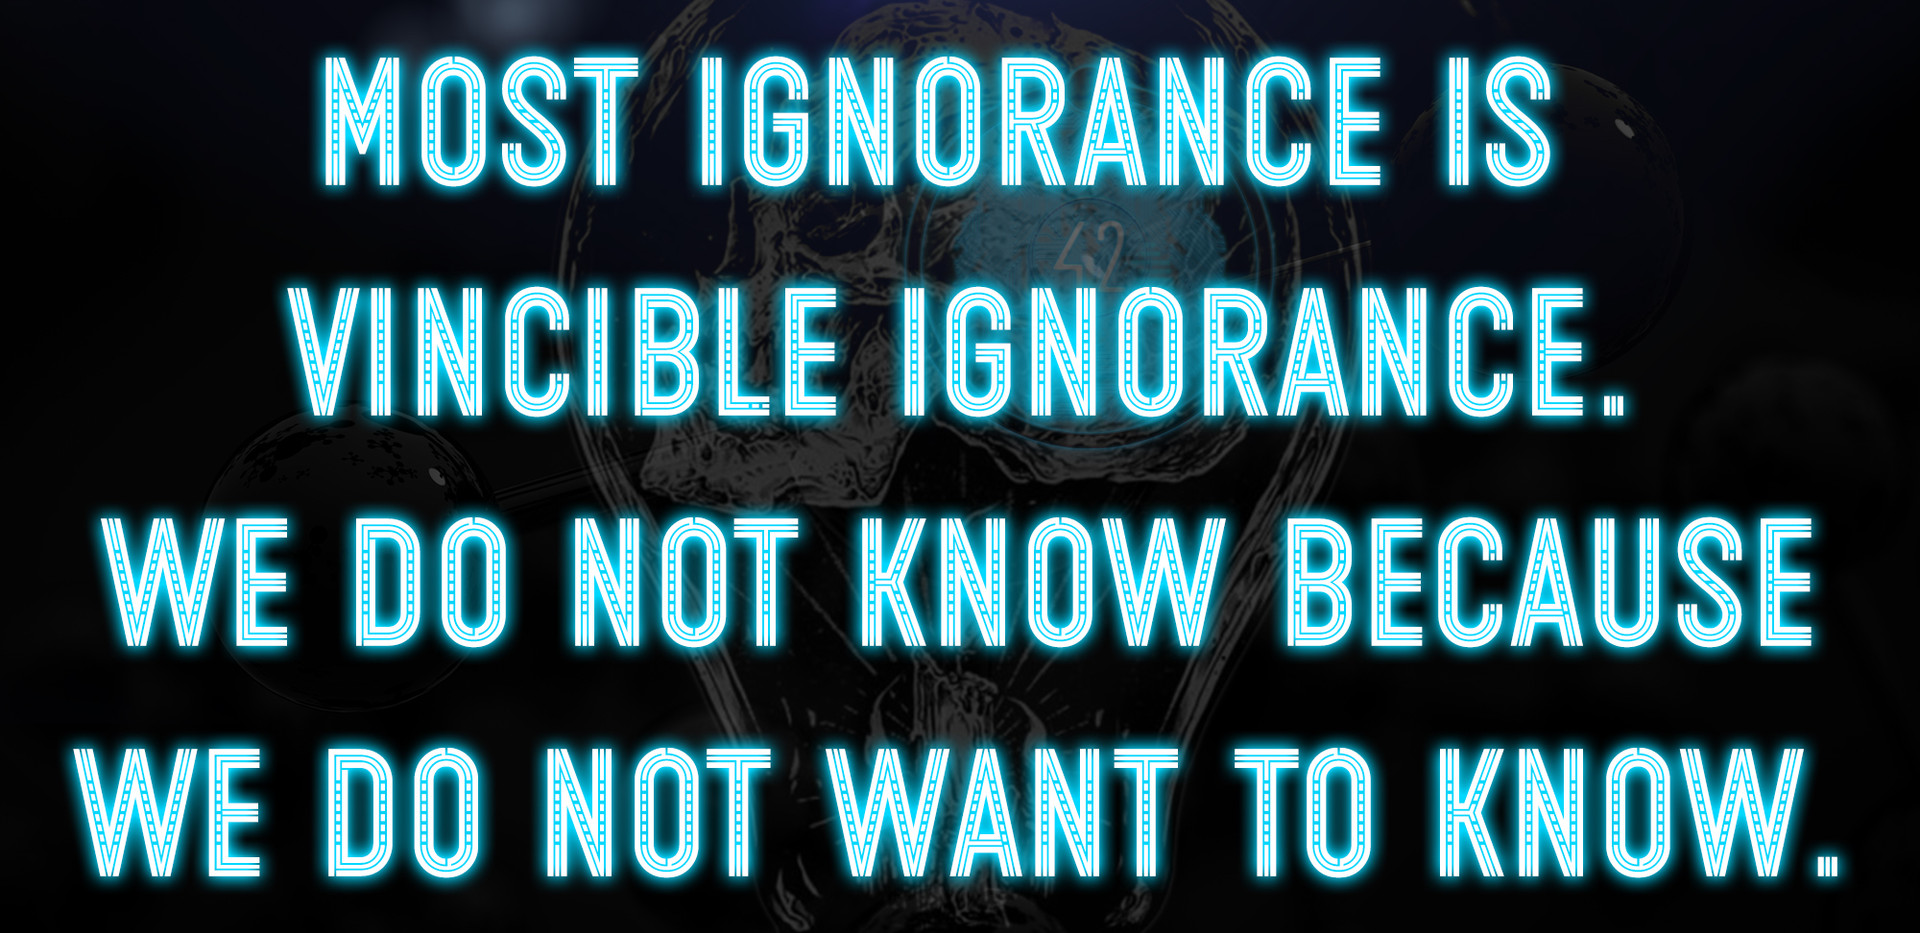 Think about that-ignorance.jpg